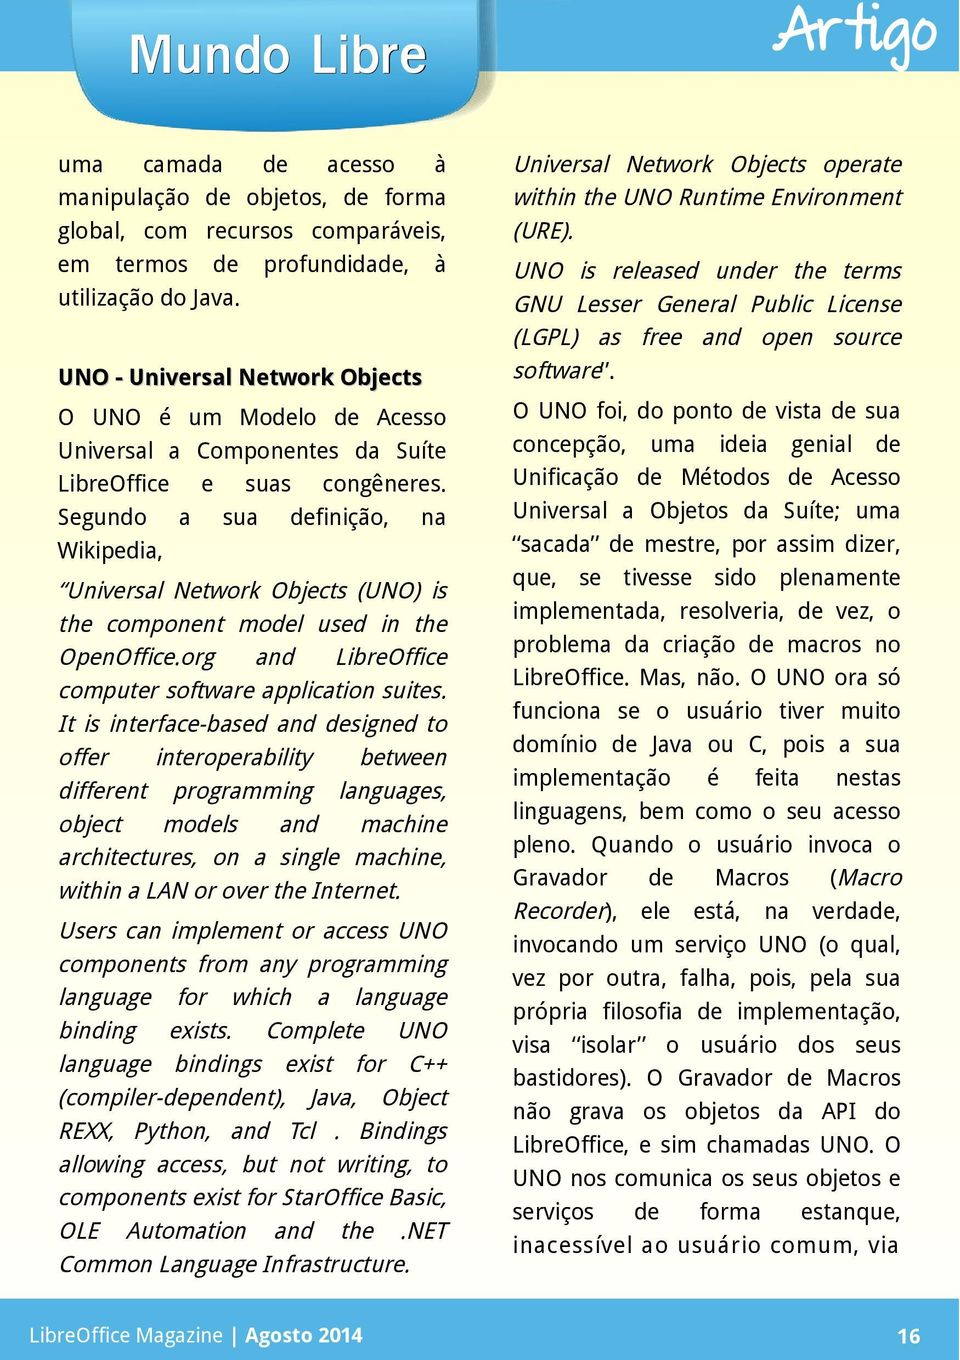 Segundo a sua definição, na Wikipedia, Universal Network Objects (UNO) is the component model used in the OpenOffice.org and computer software application suites.